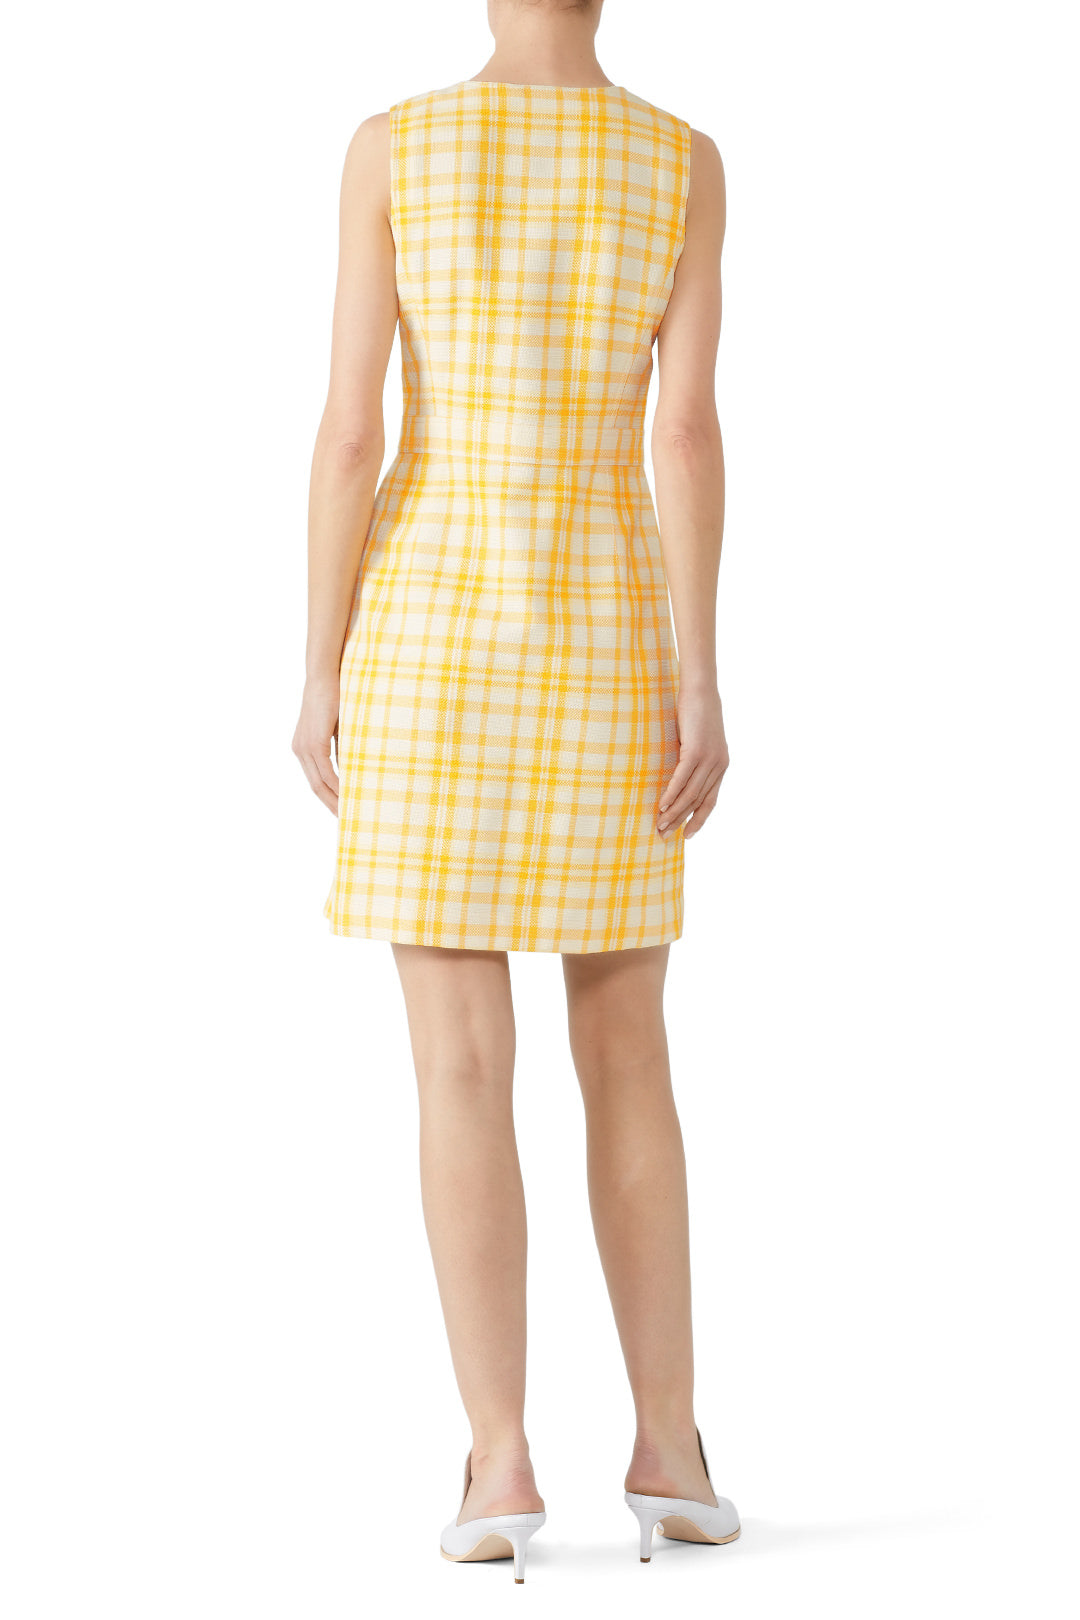 Tory Burch | Jacquard Notch Front Shift Dress